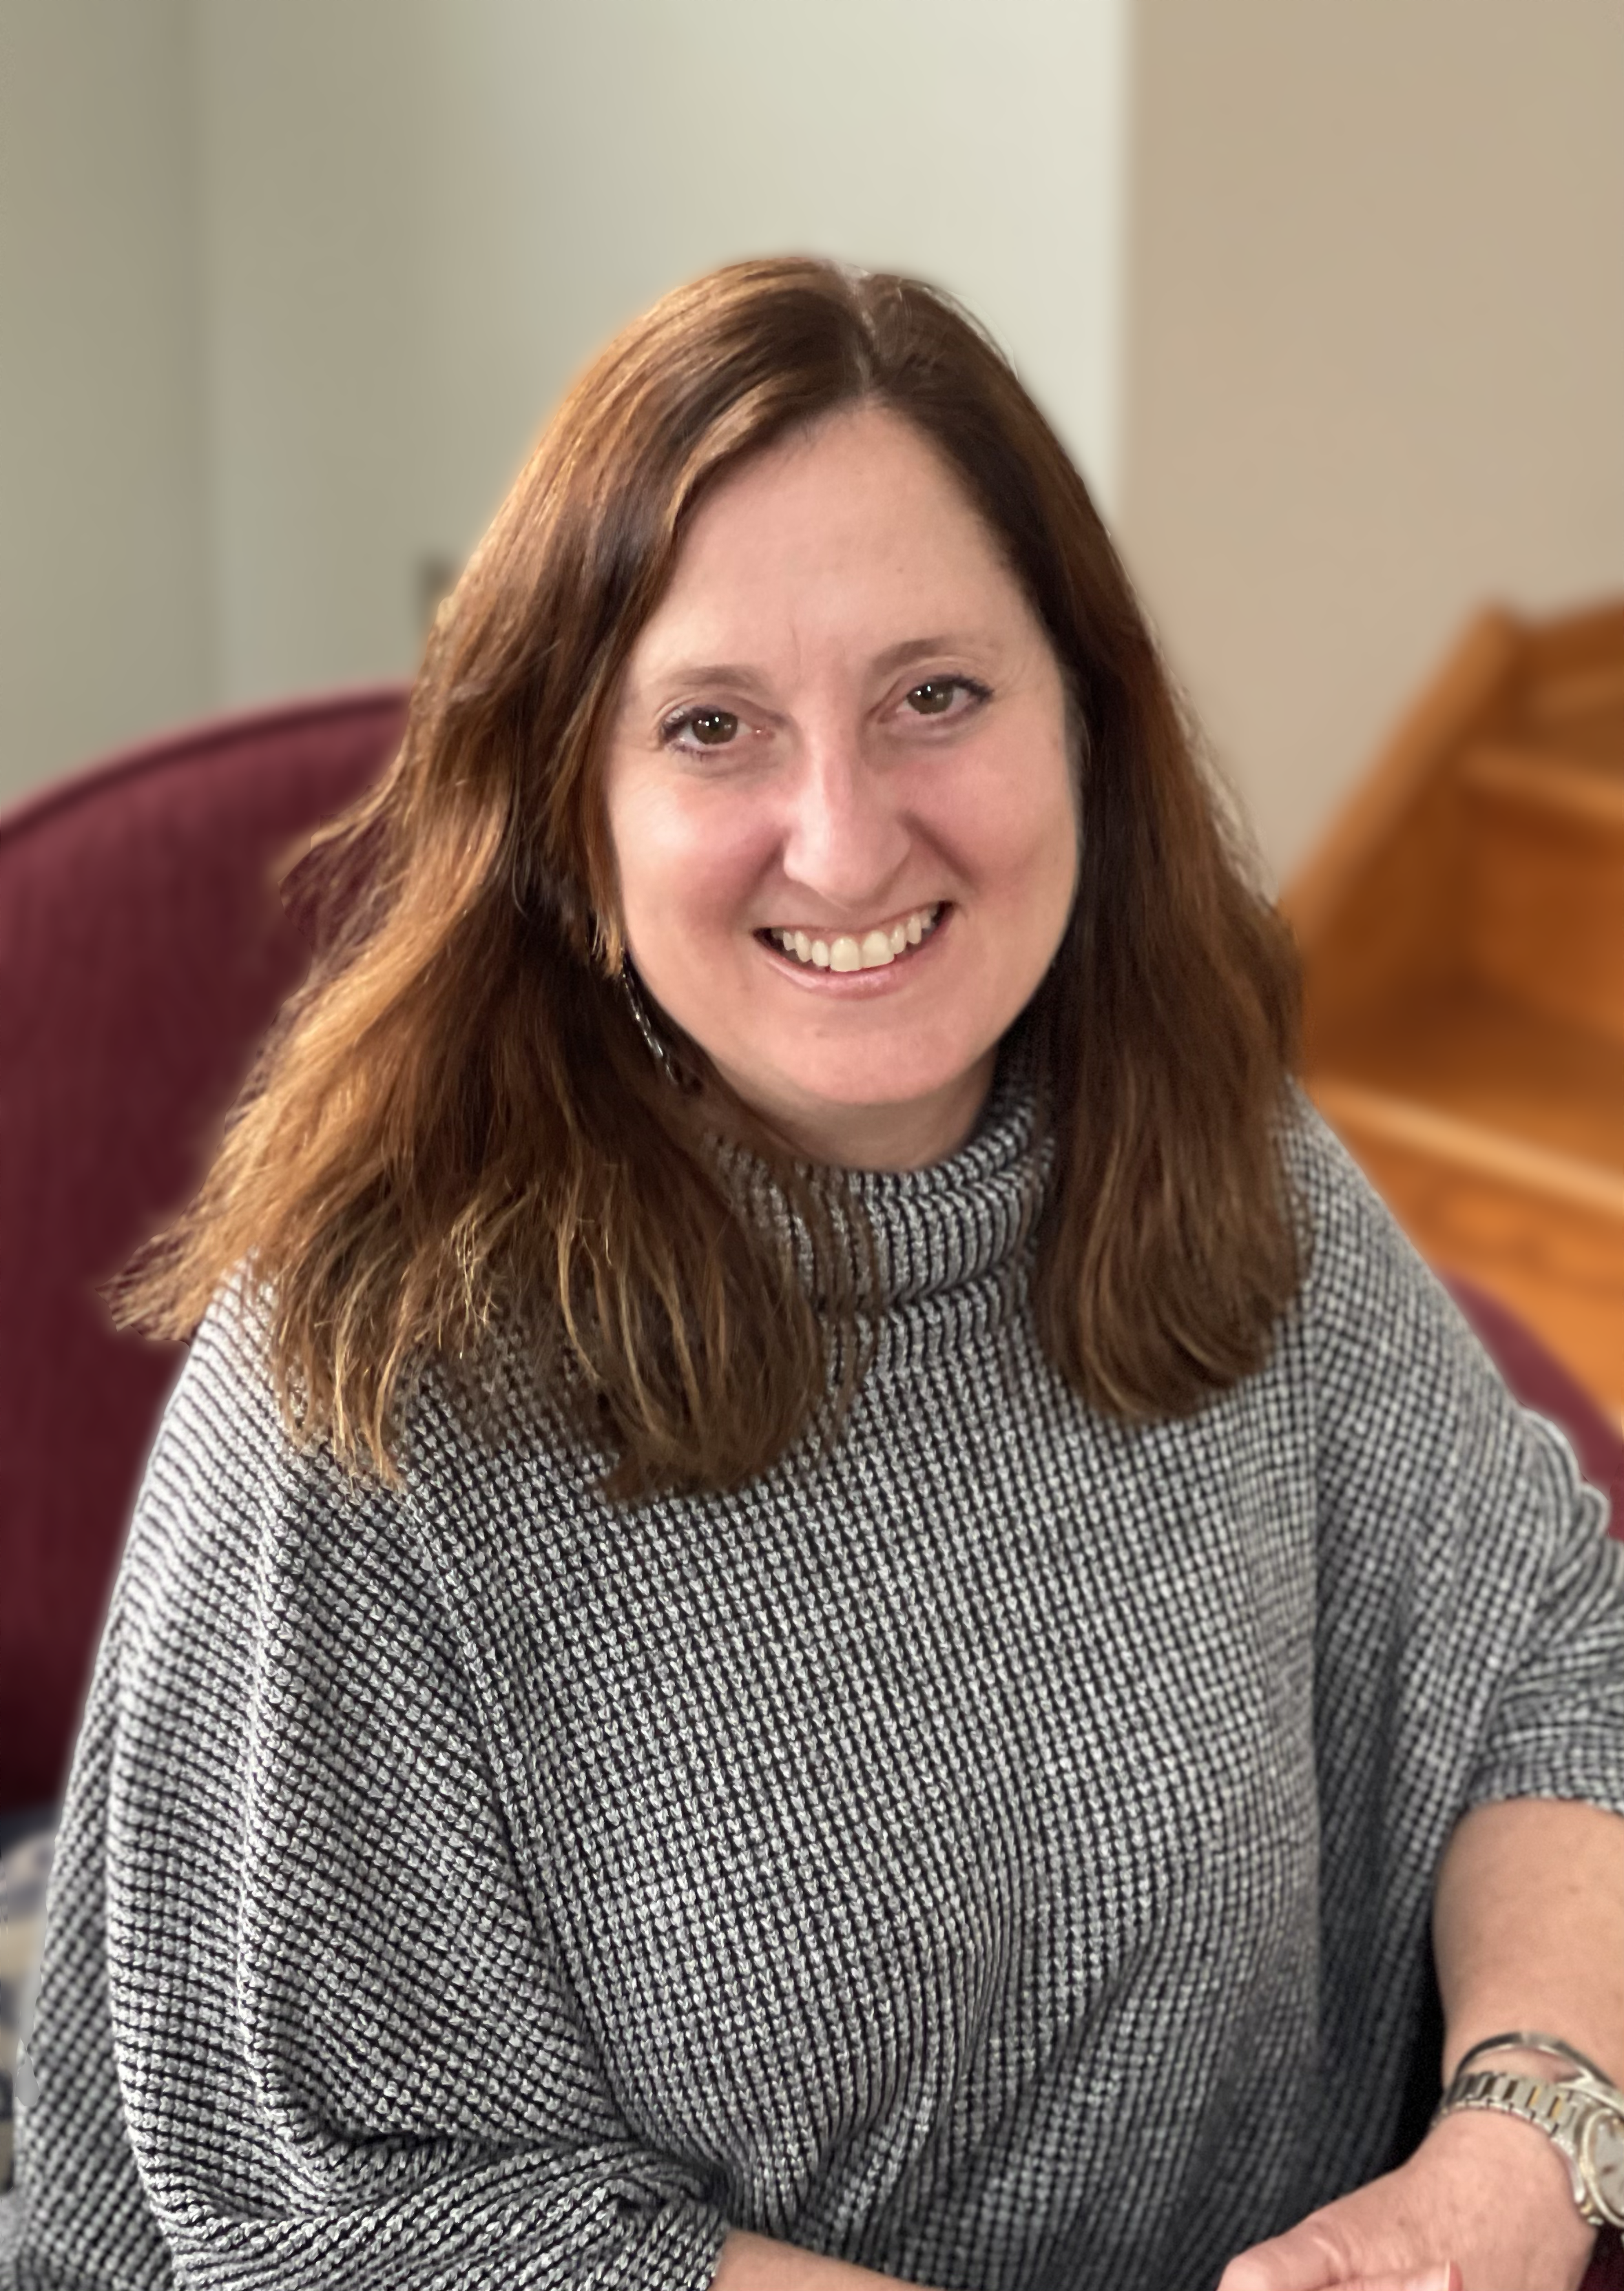 Image of Kristin Buss, Professor of Psychology.